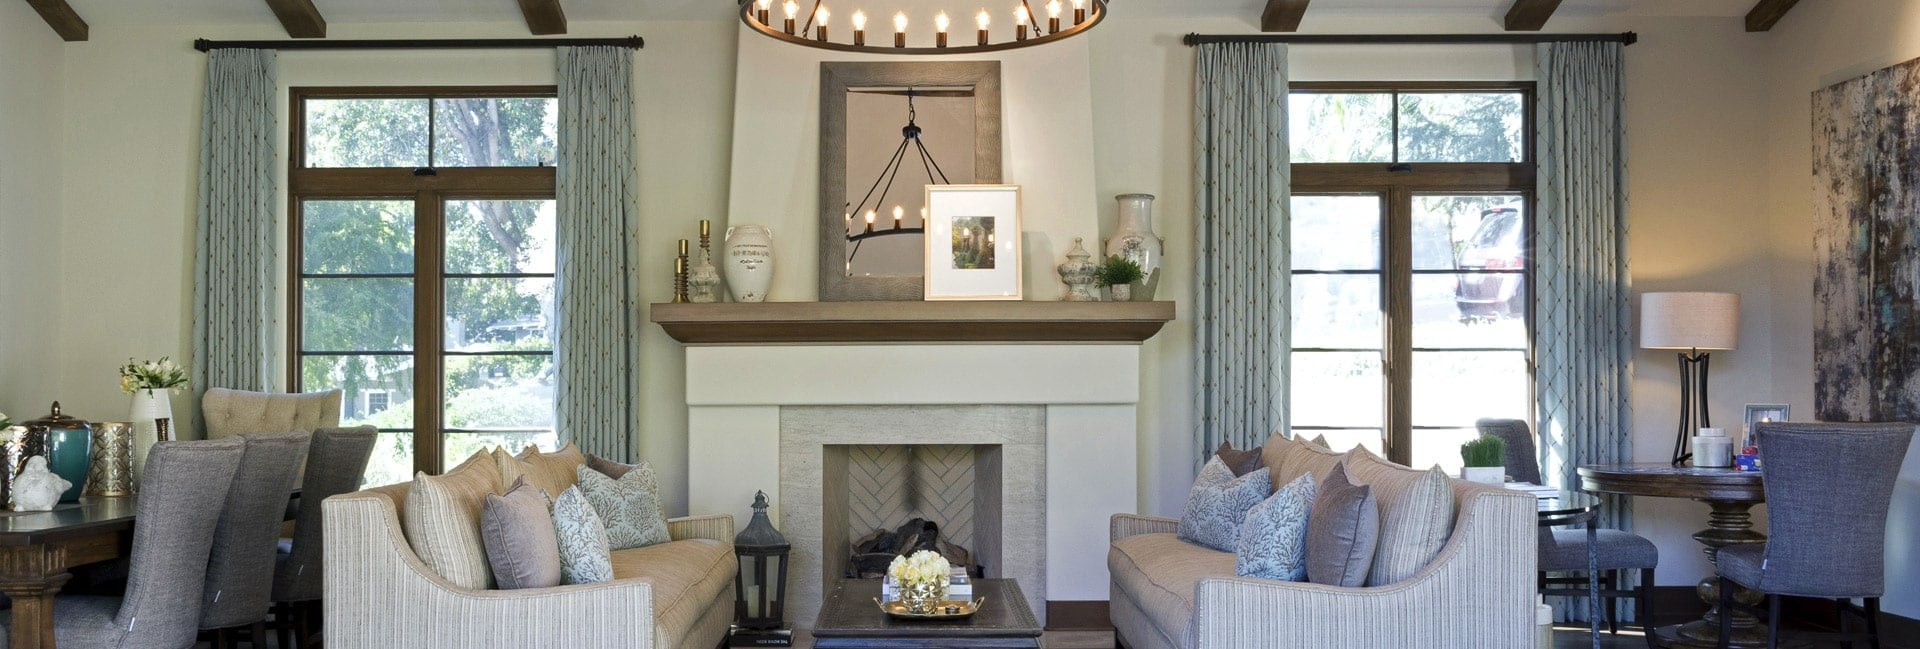 La Cañada's Blvd house interior design by Courtney Thomas Design